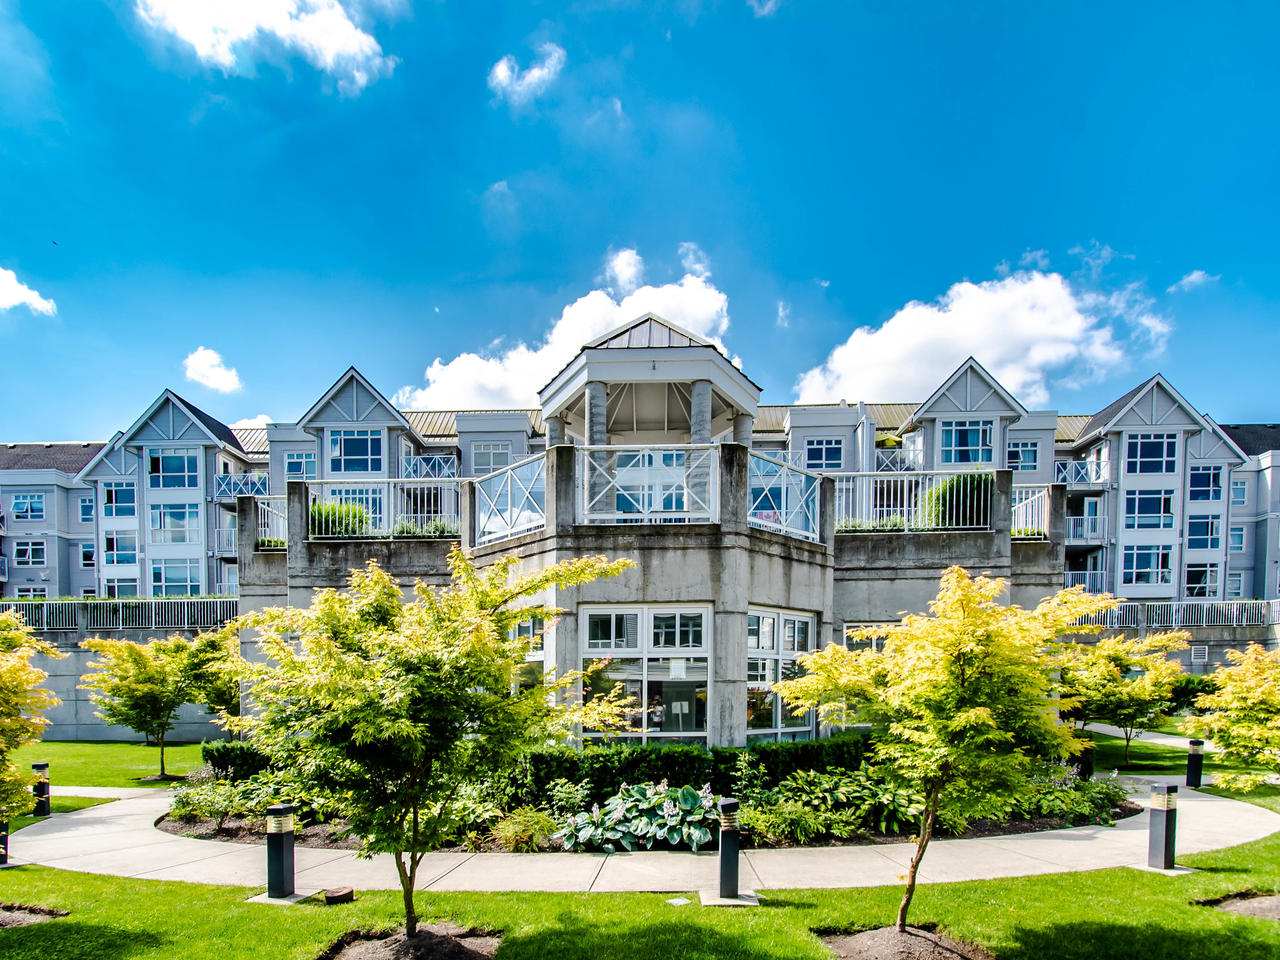 Port Moody, British Columbia, Canada, 2 Bedrooms Bedrooms, Register to View ,2 BathroomsBathrooms,Condo,For Sale,St Johns,380600602275847